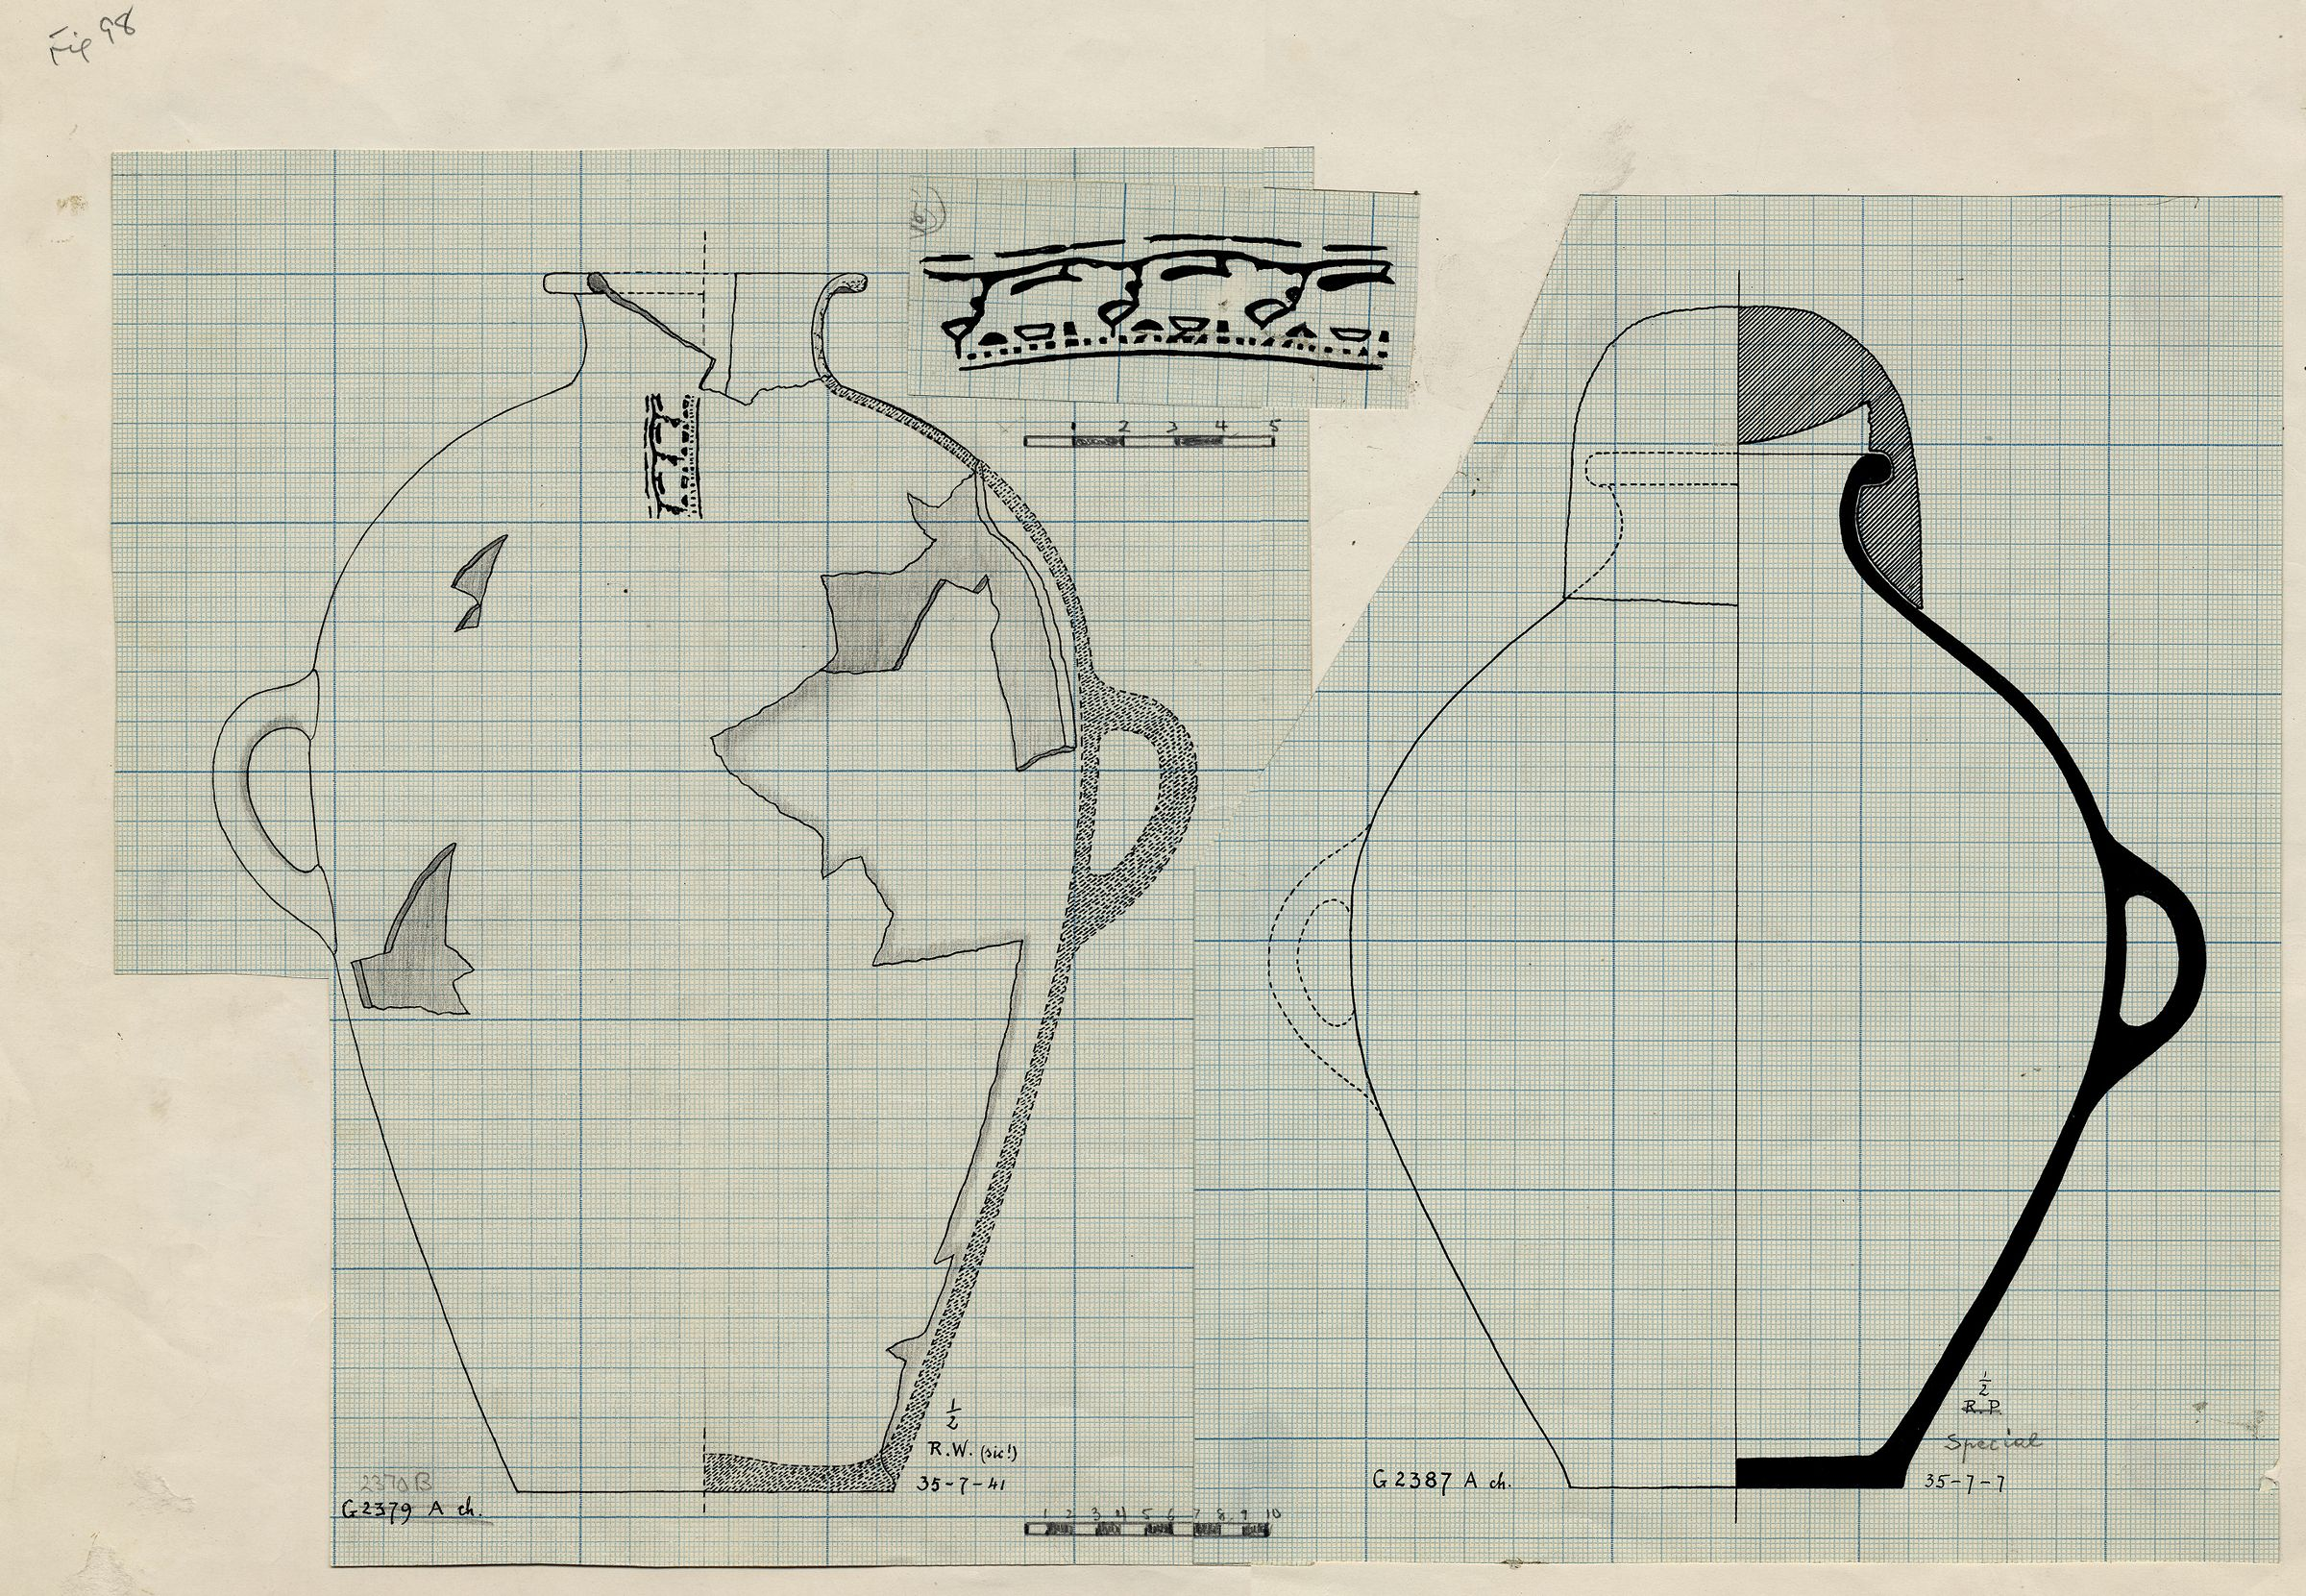 Drawings: Pottery, jars with two handles from G 2370, Shaft B; and G 2387, Shaft A